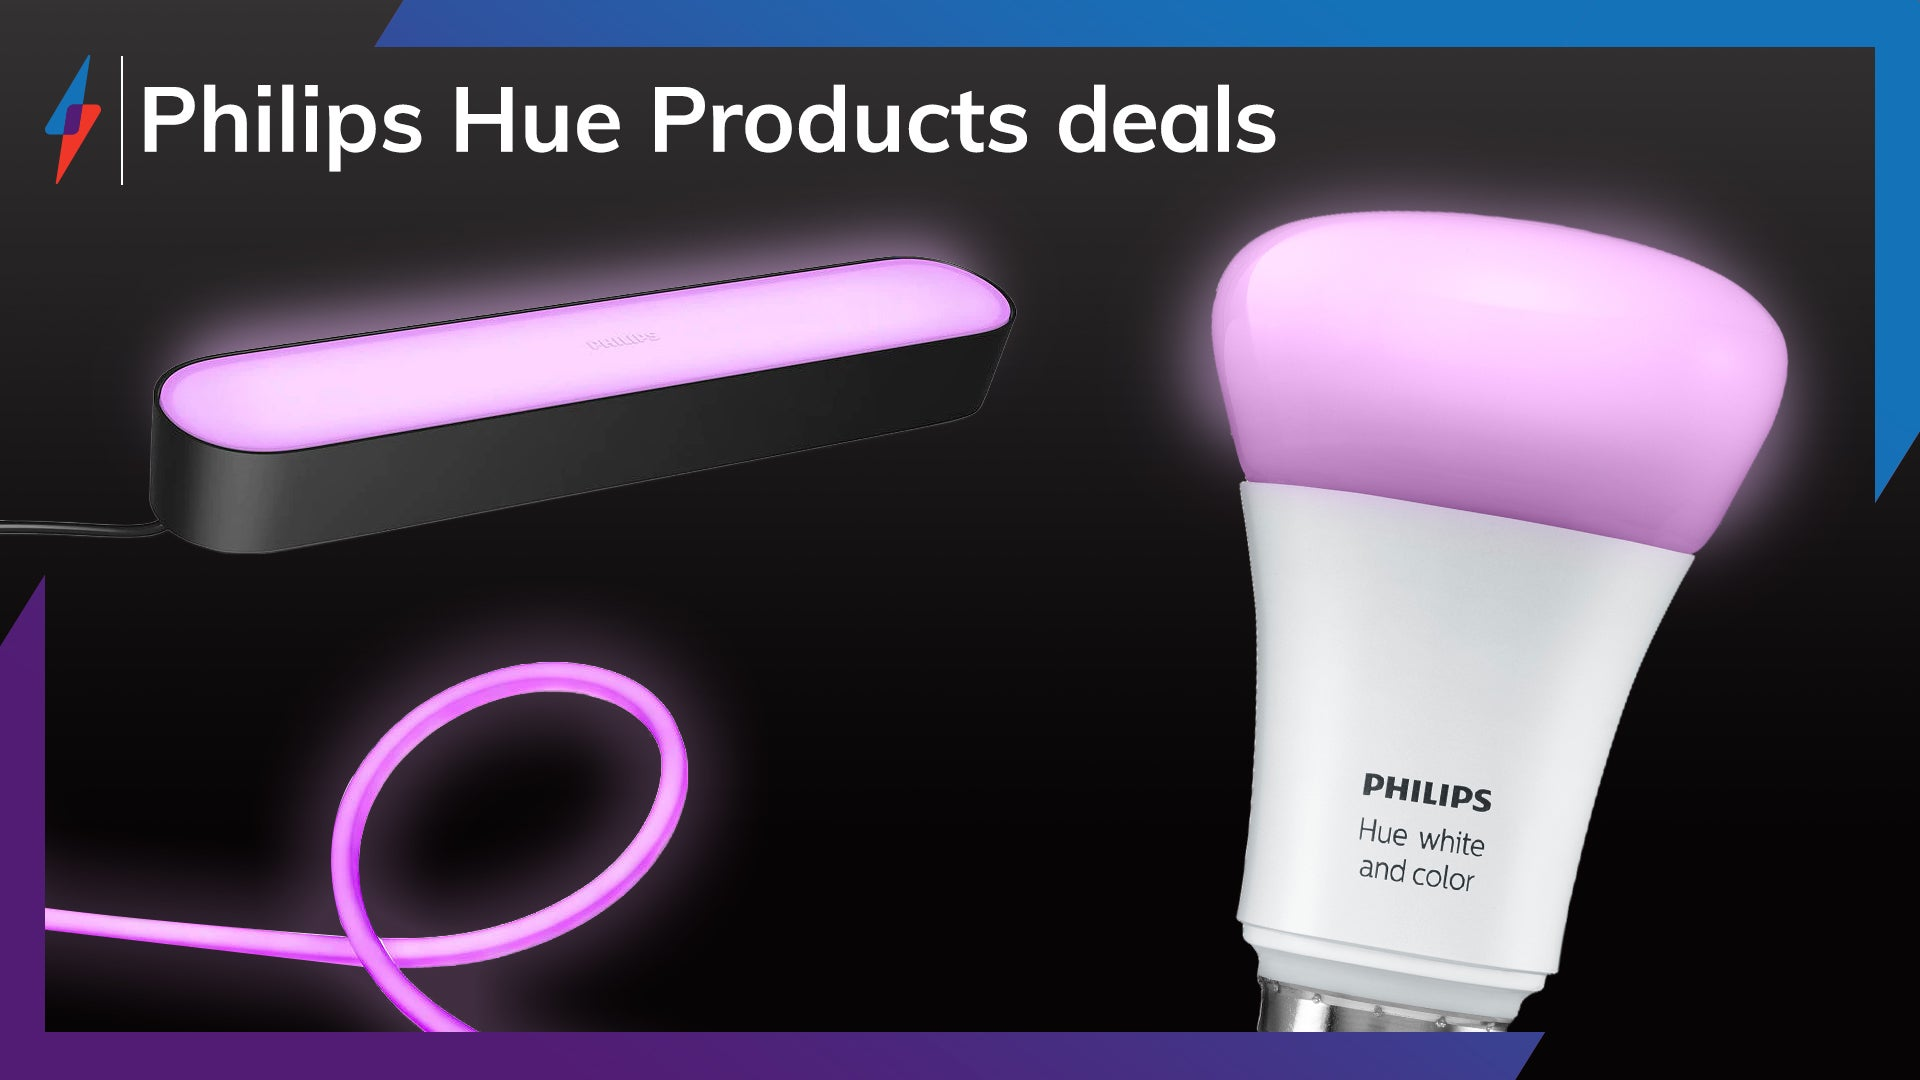 Glow up your smart lighting with this Philips Hue bundle promotion